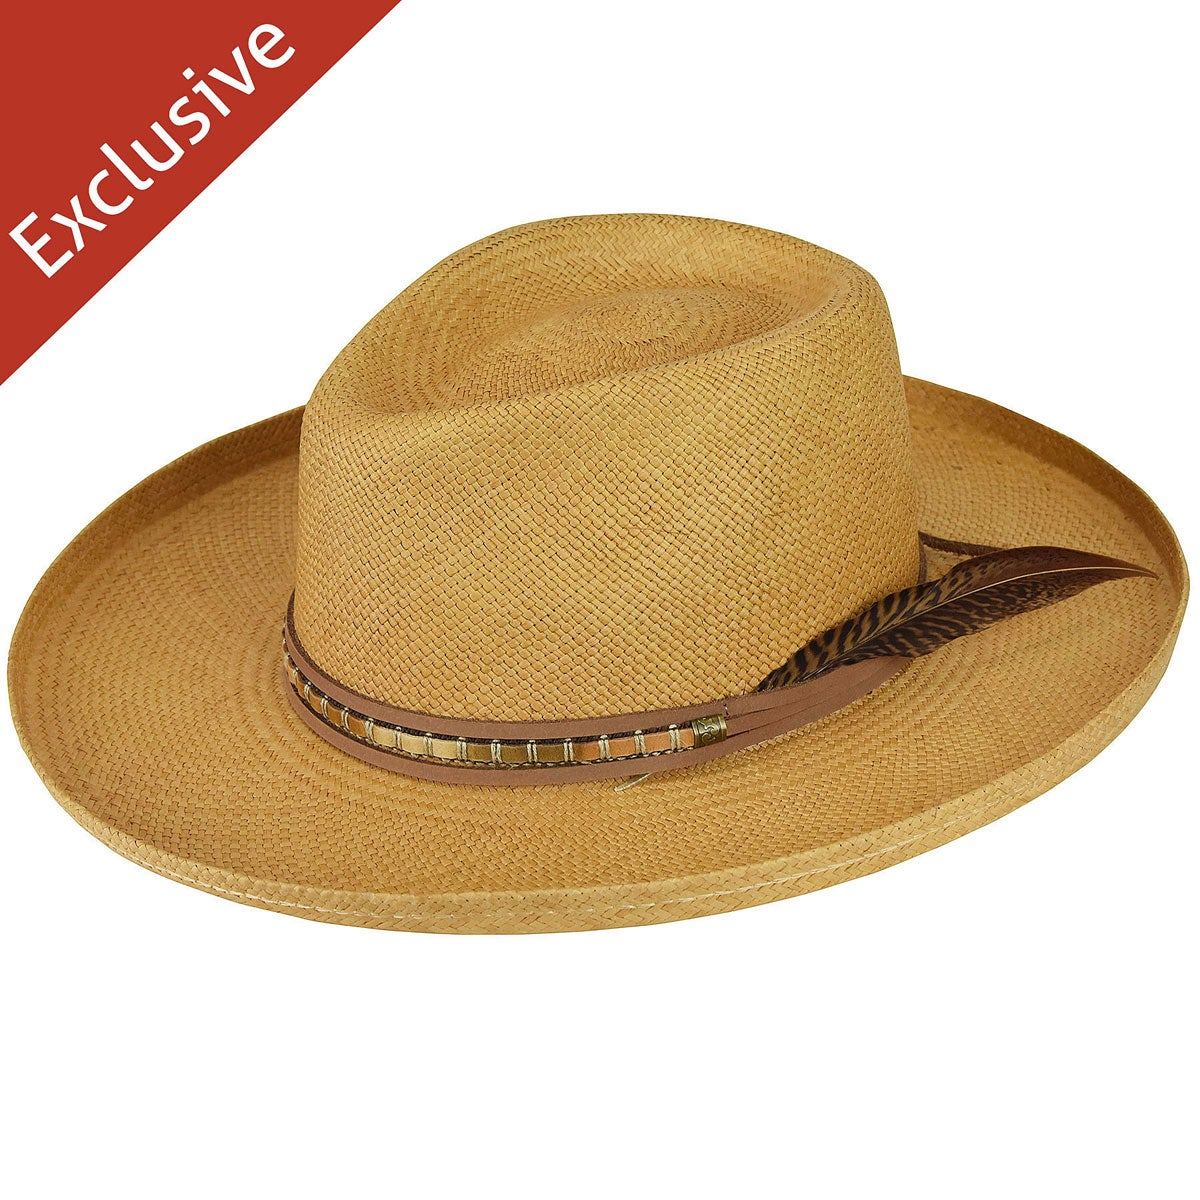 Bollman Hat Company Val C. Flat Brim - Exclusive in Goldenrod